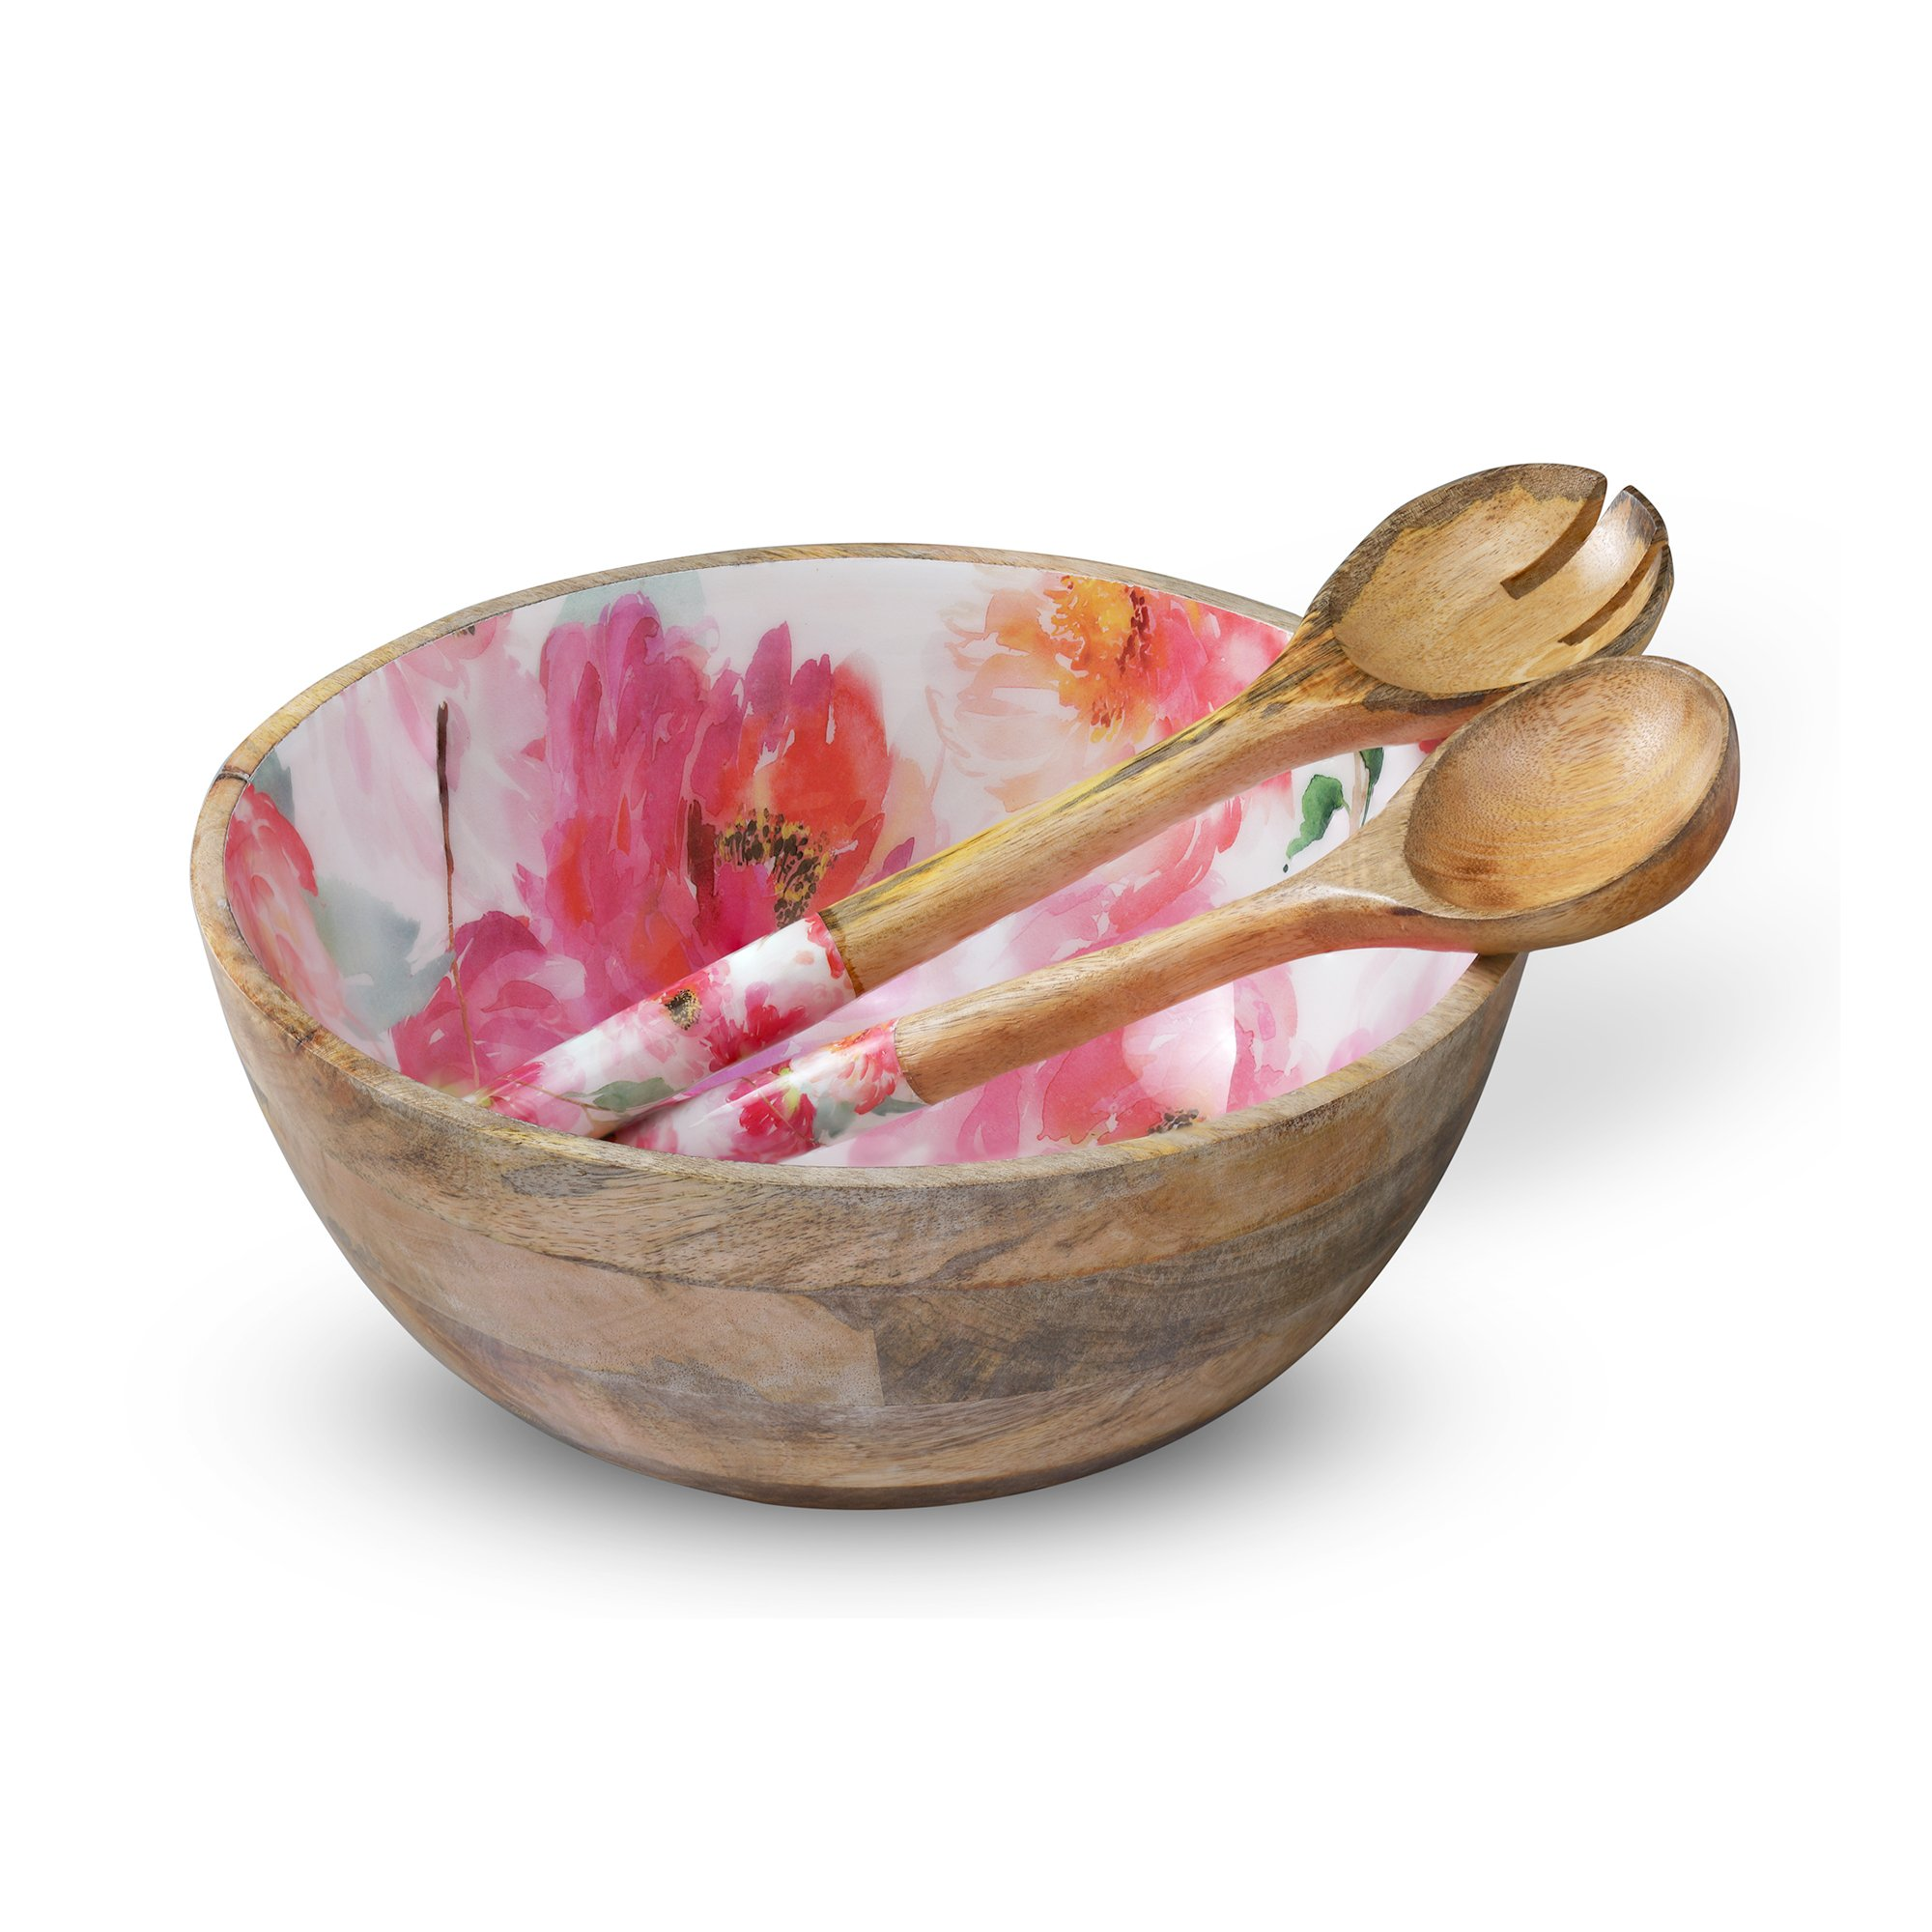 Wooden Salad Bowl Colorful Mixing and Serving Bowls Set with 2 Servers, Large Wood Container Set with Tongs for Fruits, Pasta, Cereal and Vegetable - Round 12'' Diameter x 5'' Height, Floral Design